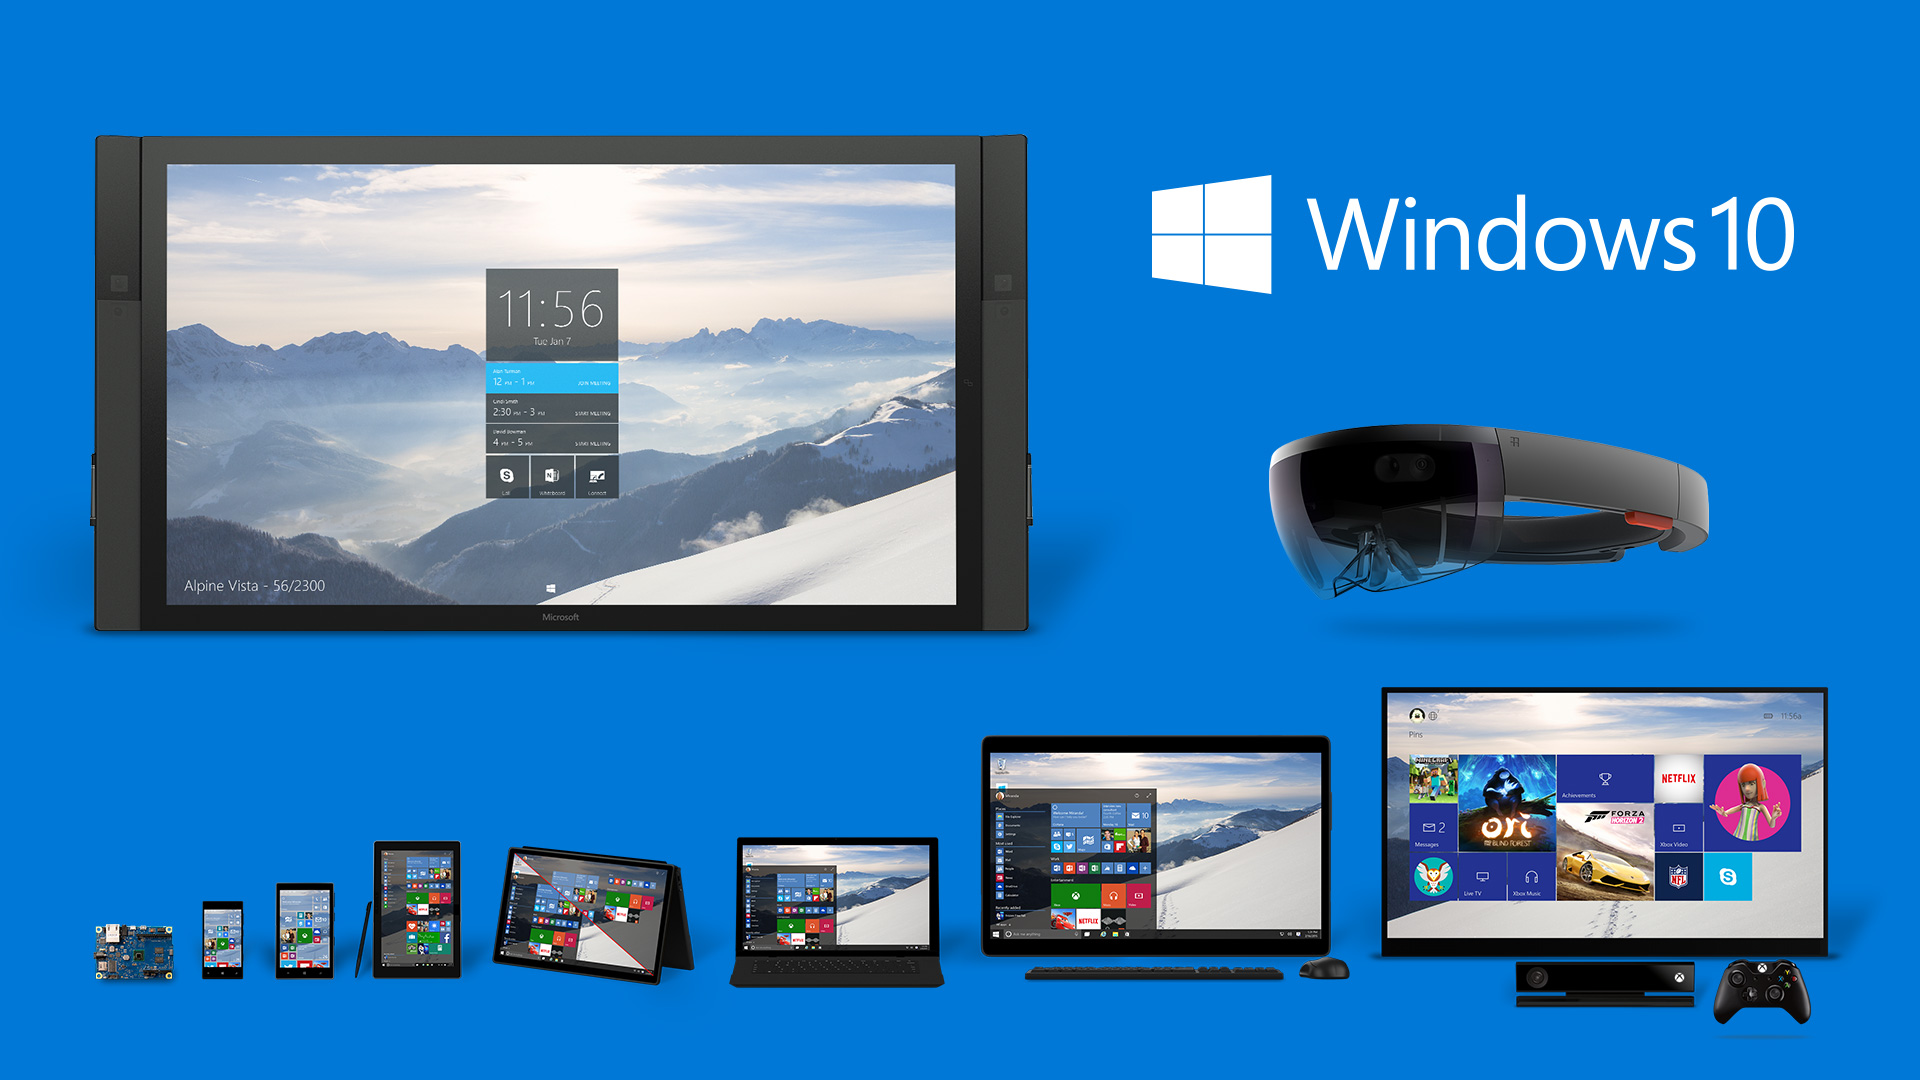 Windows 10 running on Desktop, Laptop, Surface, Phone, HoloLens, Surface Hub